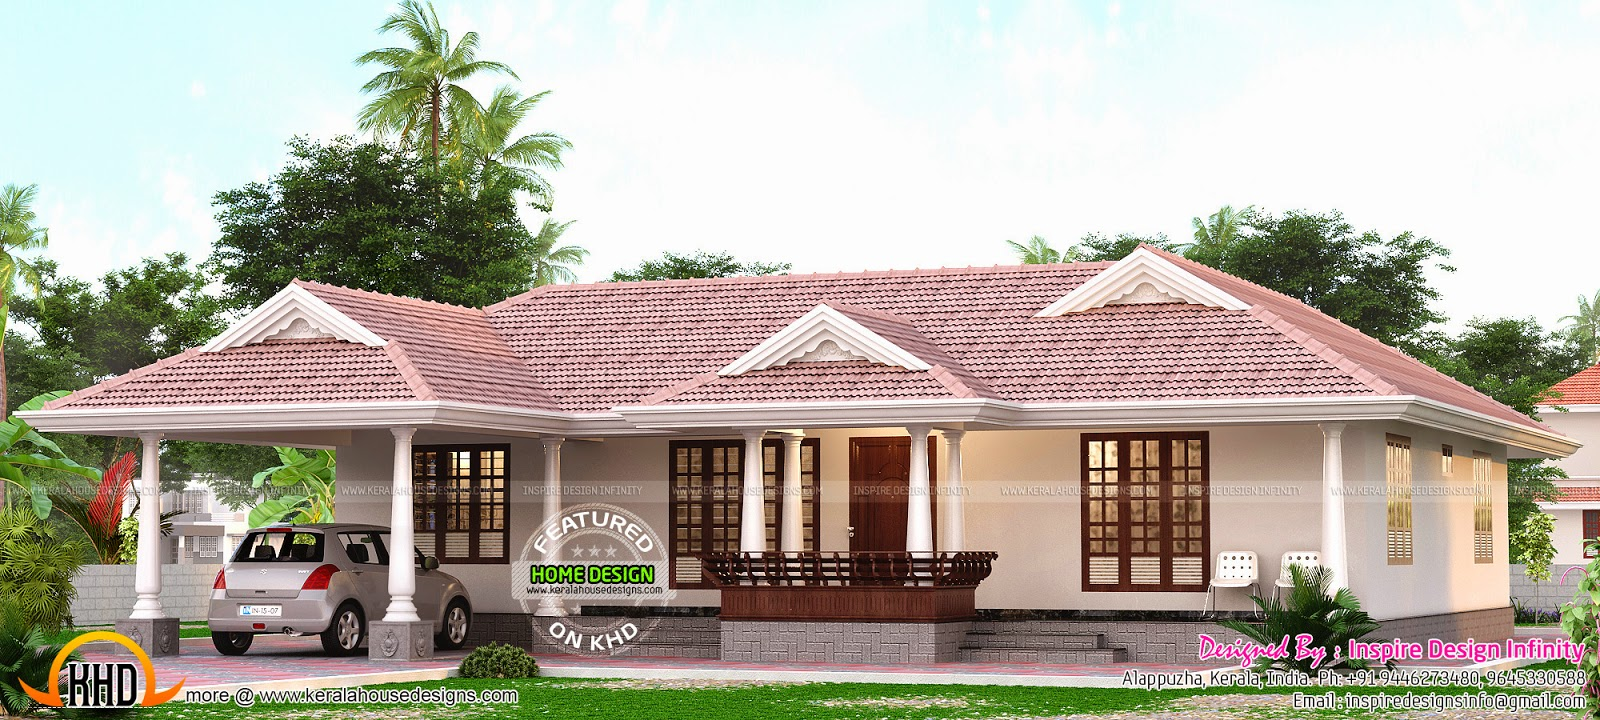 Kerala model single storied home kerala home design and for Kerala house plans and designs